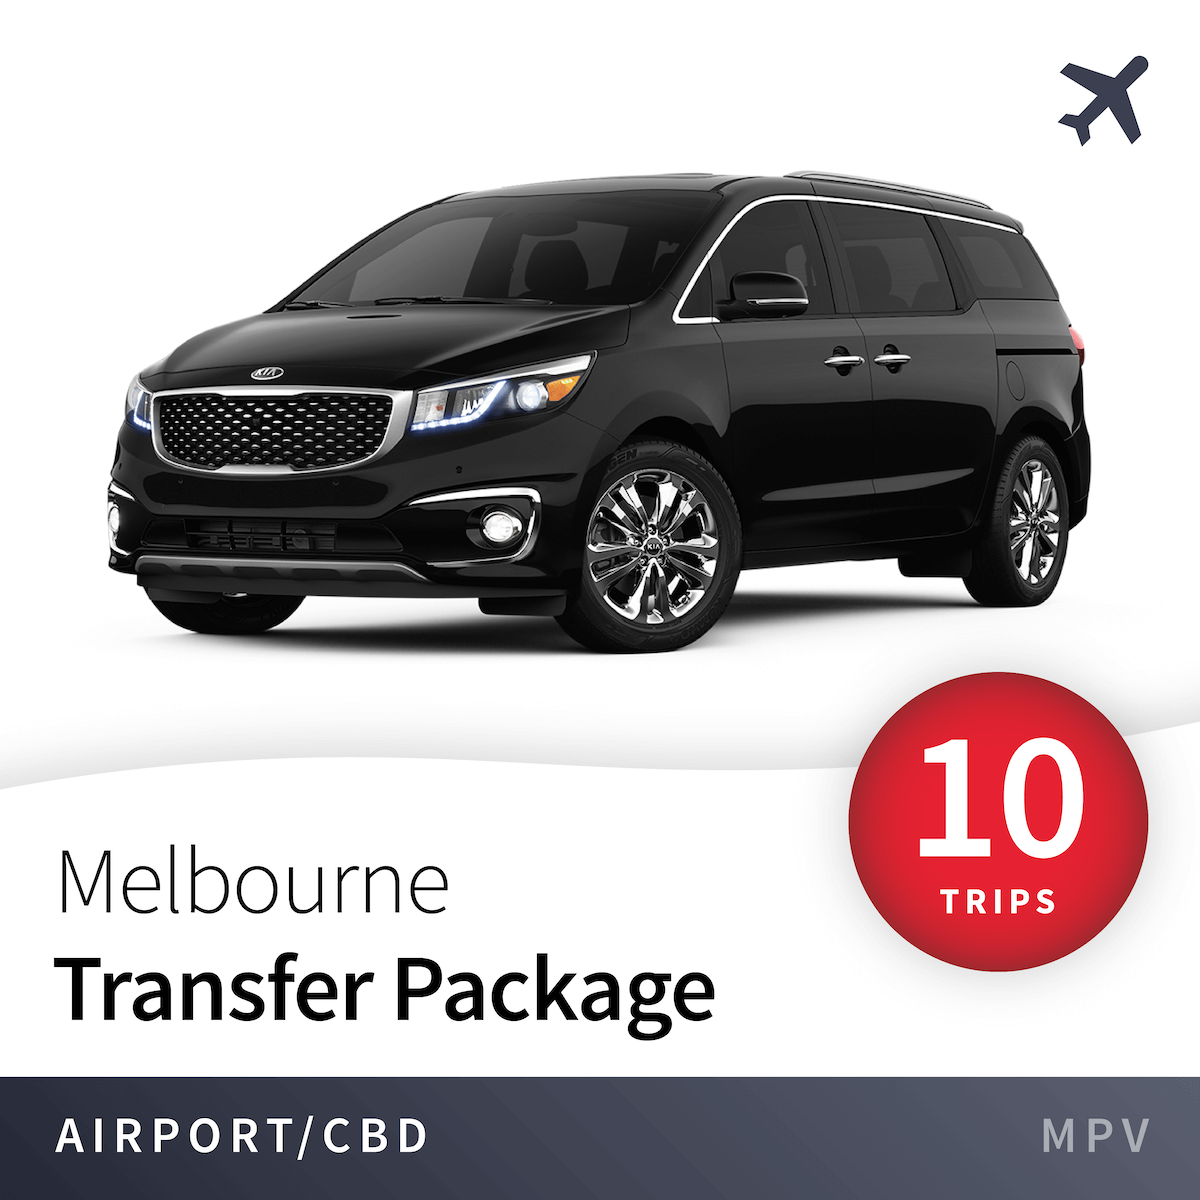 Melbourne Airport Transfer Package - MPV (10 Trips) 1